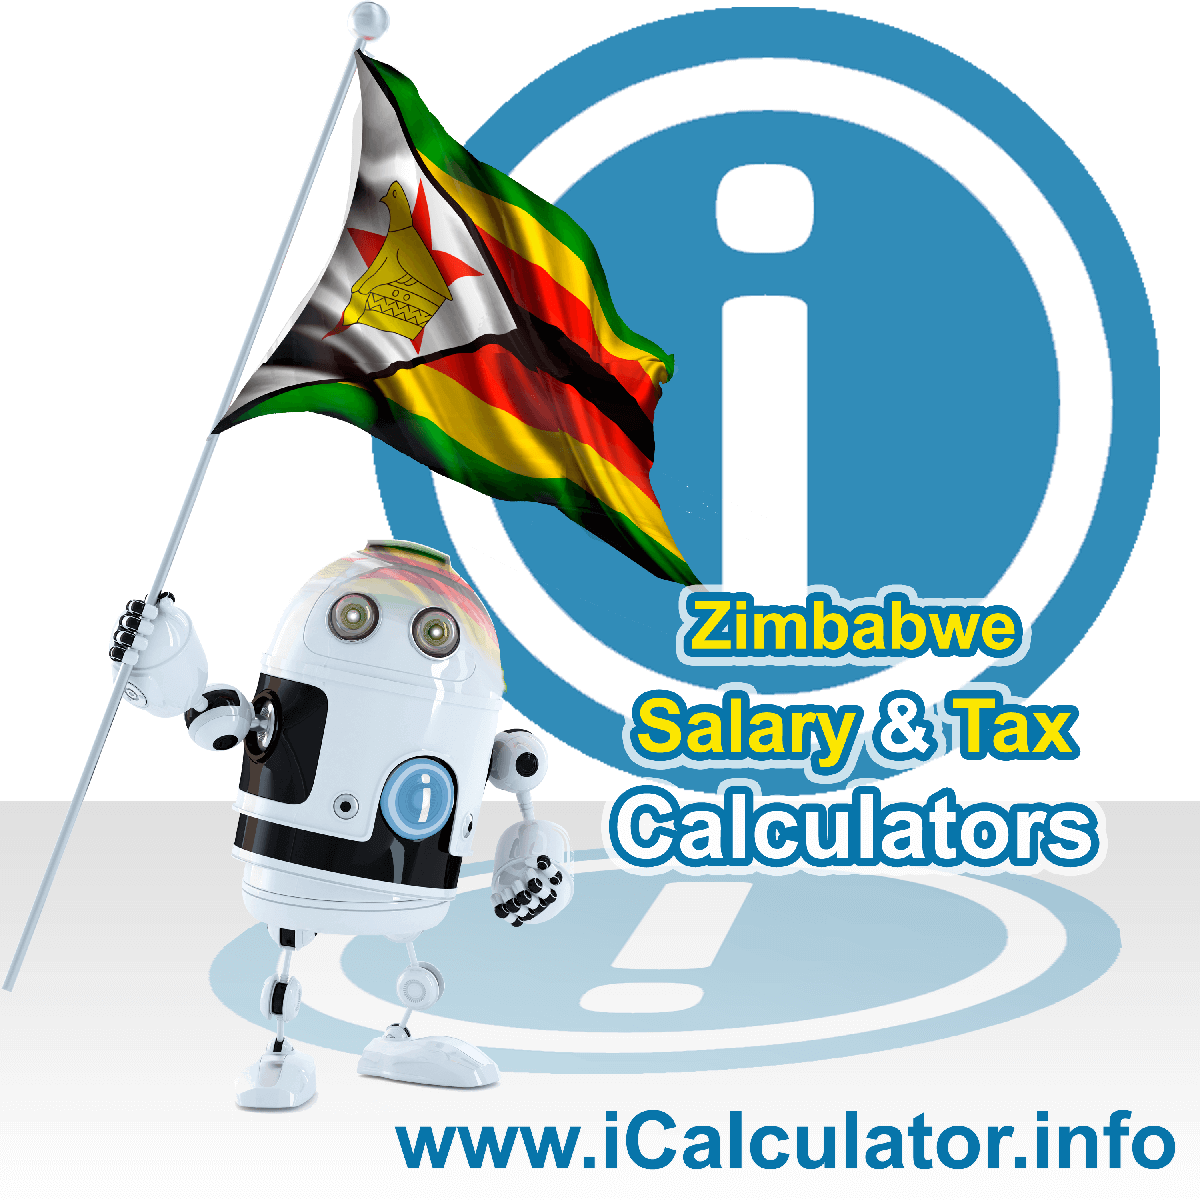 Zimbabwe Wage Calculator. This image shows the Zimbabwe flag and information relating to the tax formula for the Zimbabwe Tax Calculator